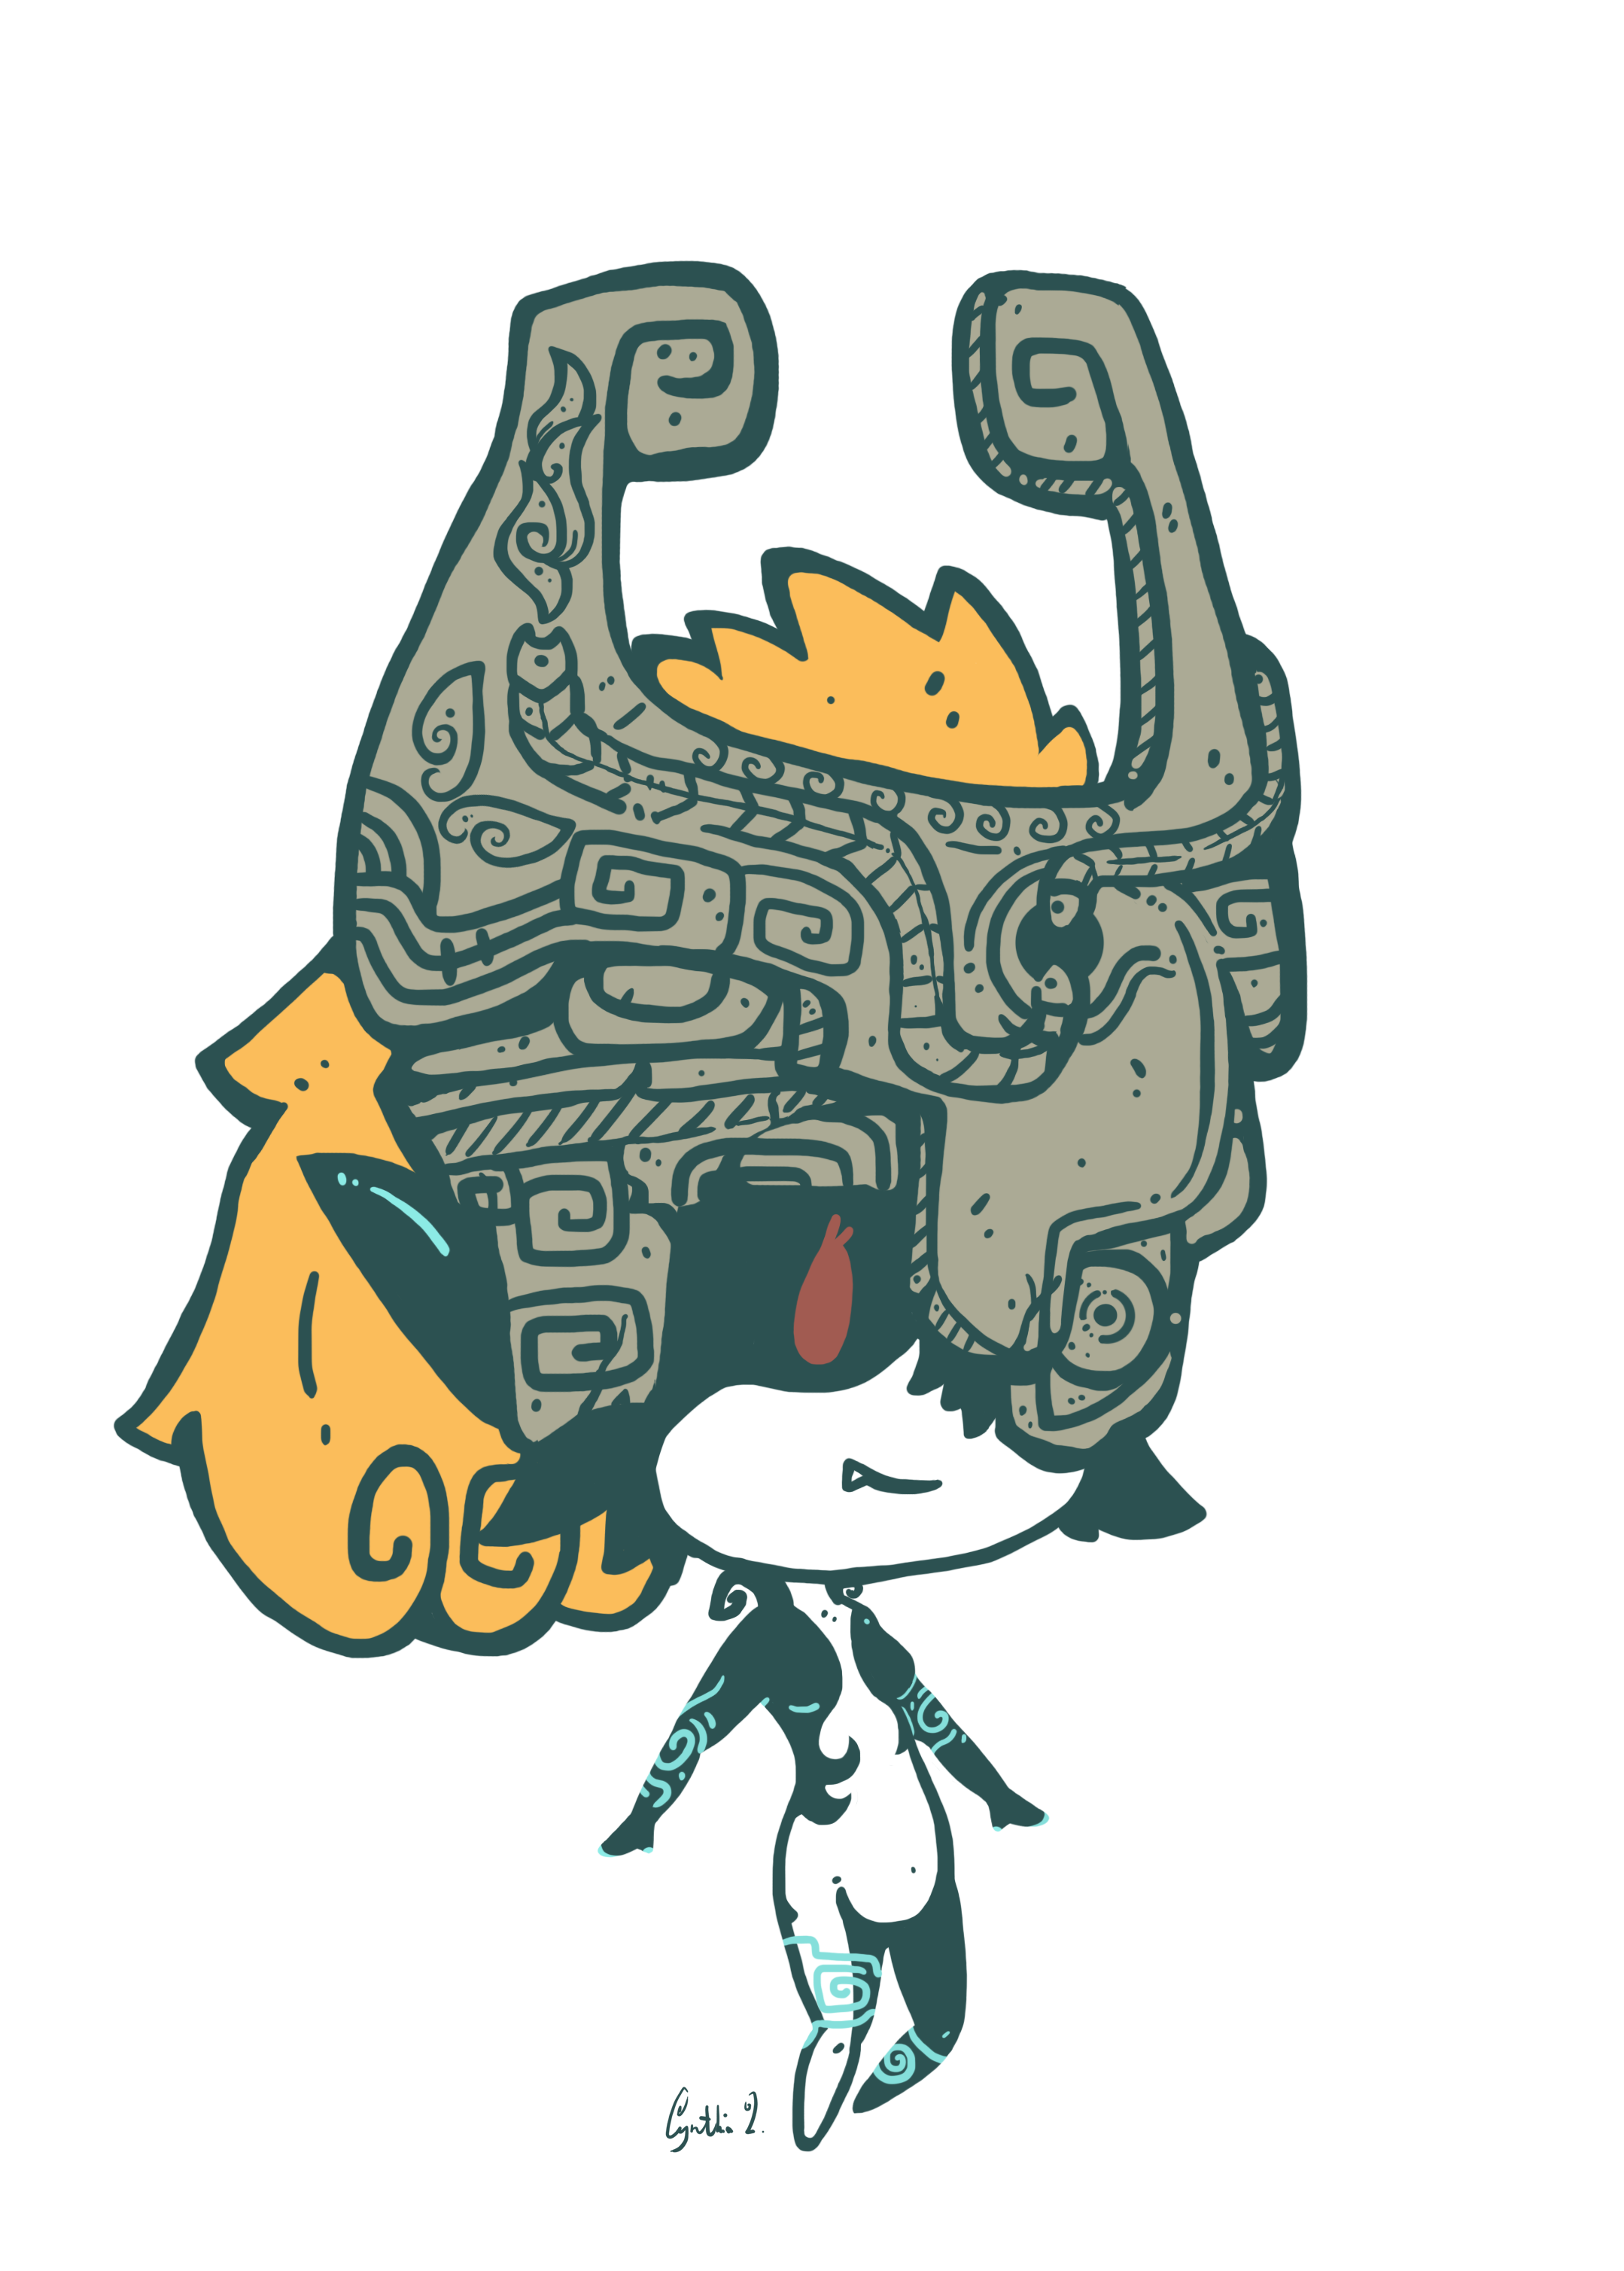 From twilight princess made. Midna drawing clip art library stock